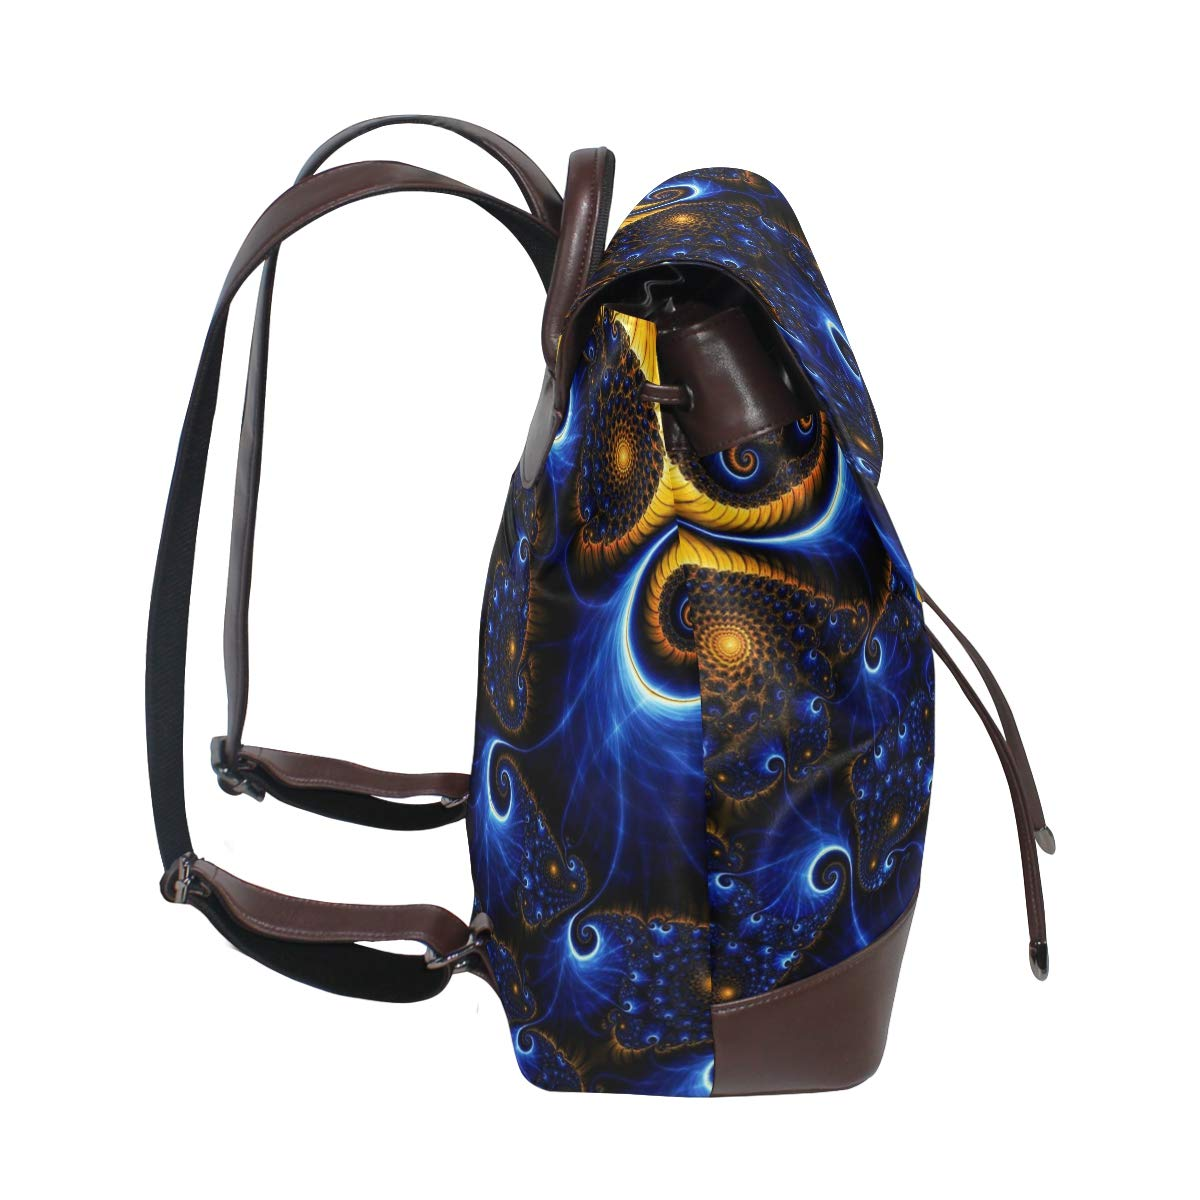 PU Leather Backpack Mysterious Floral drawstring for Travel Rucksack Daypack Casual Duffel Shoulder Bag